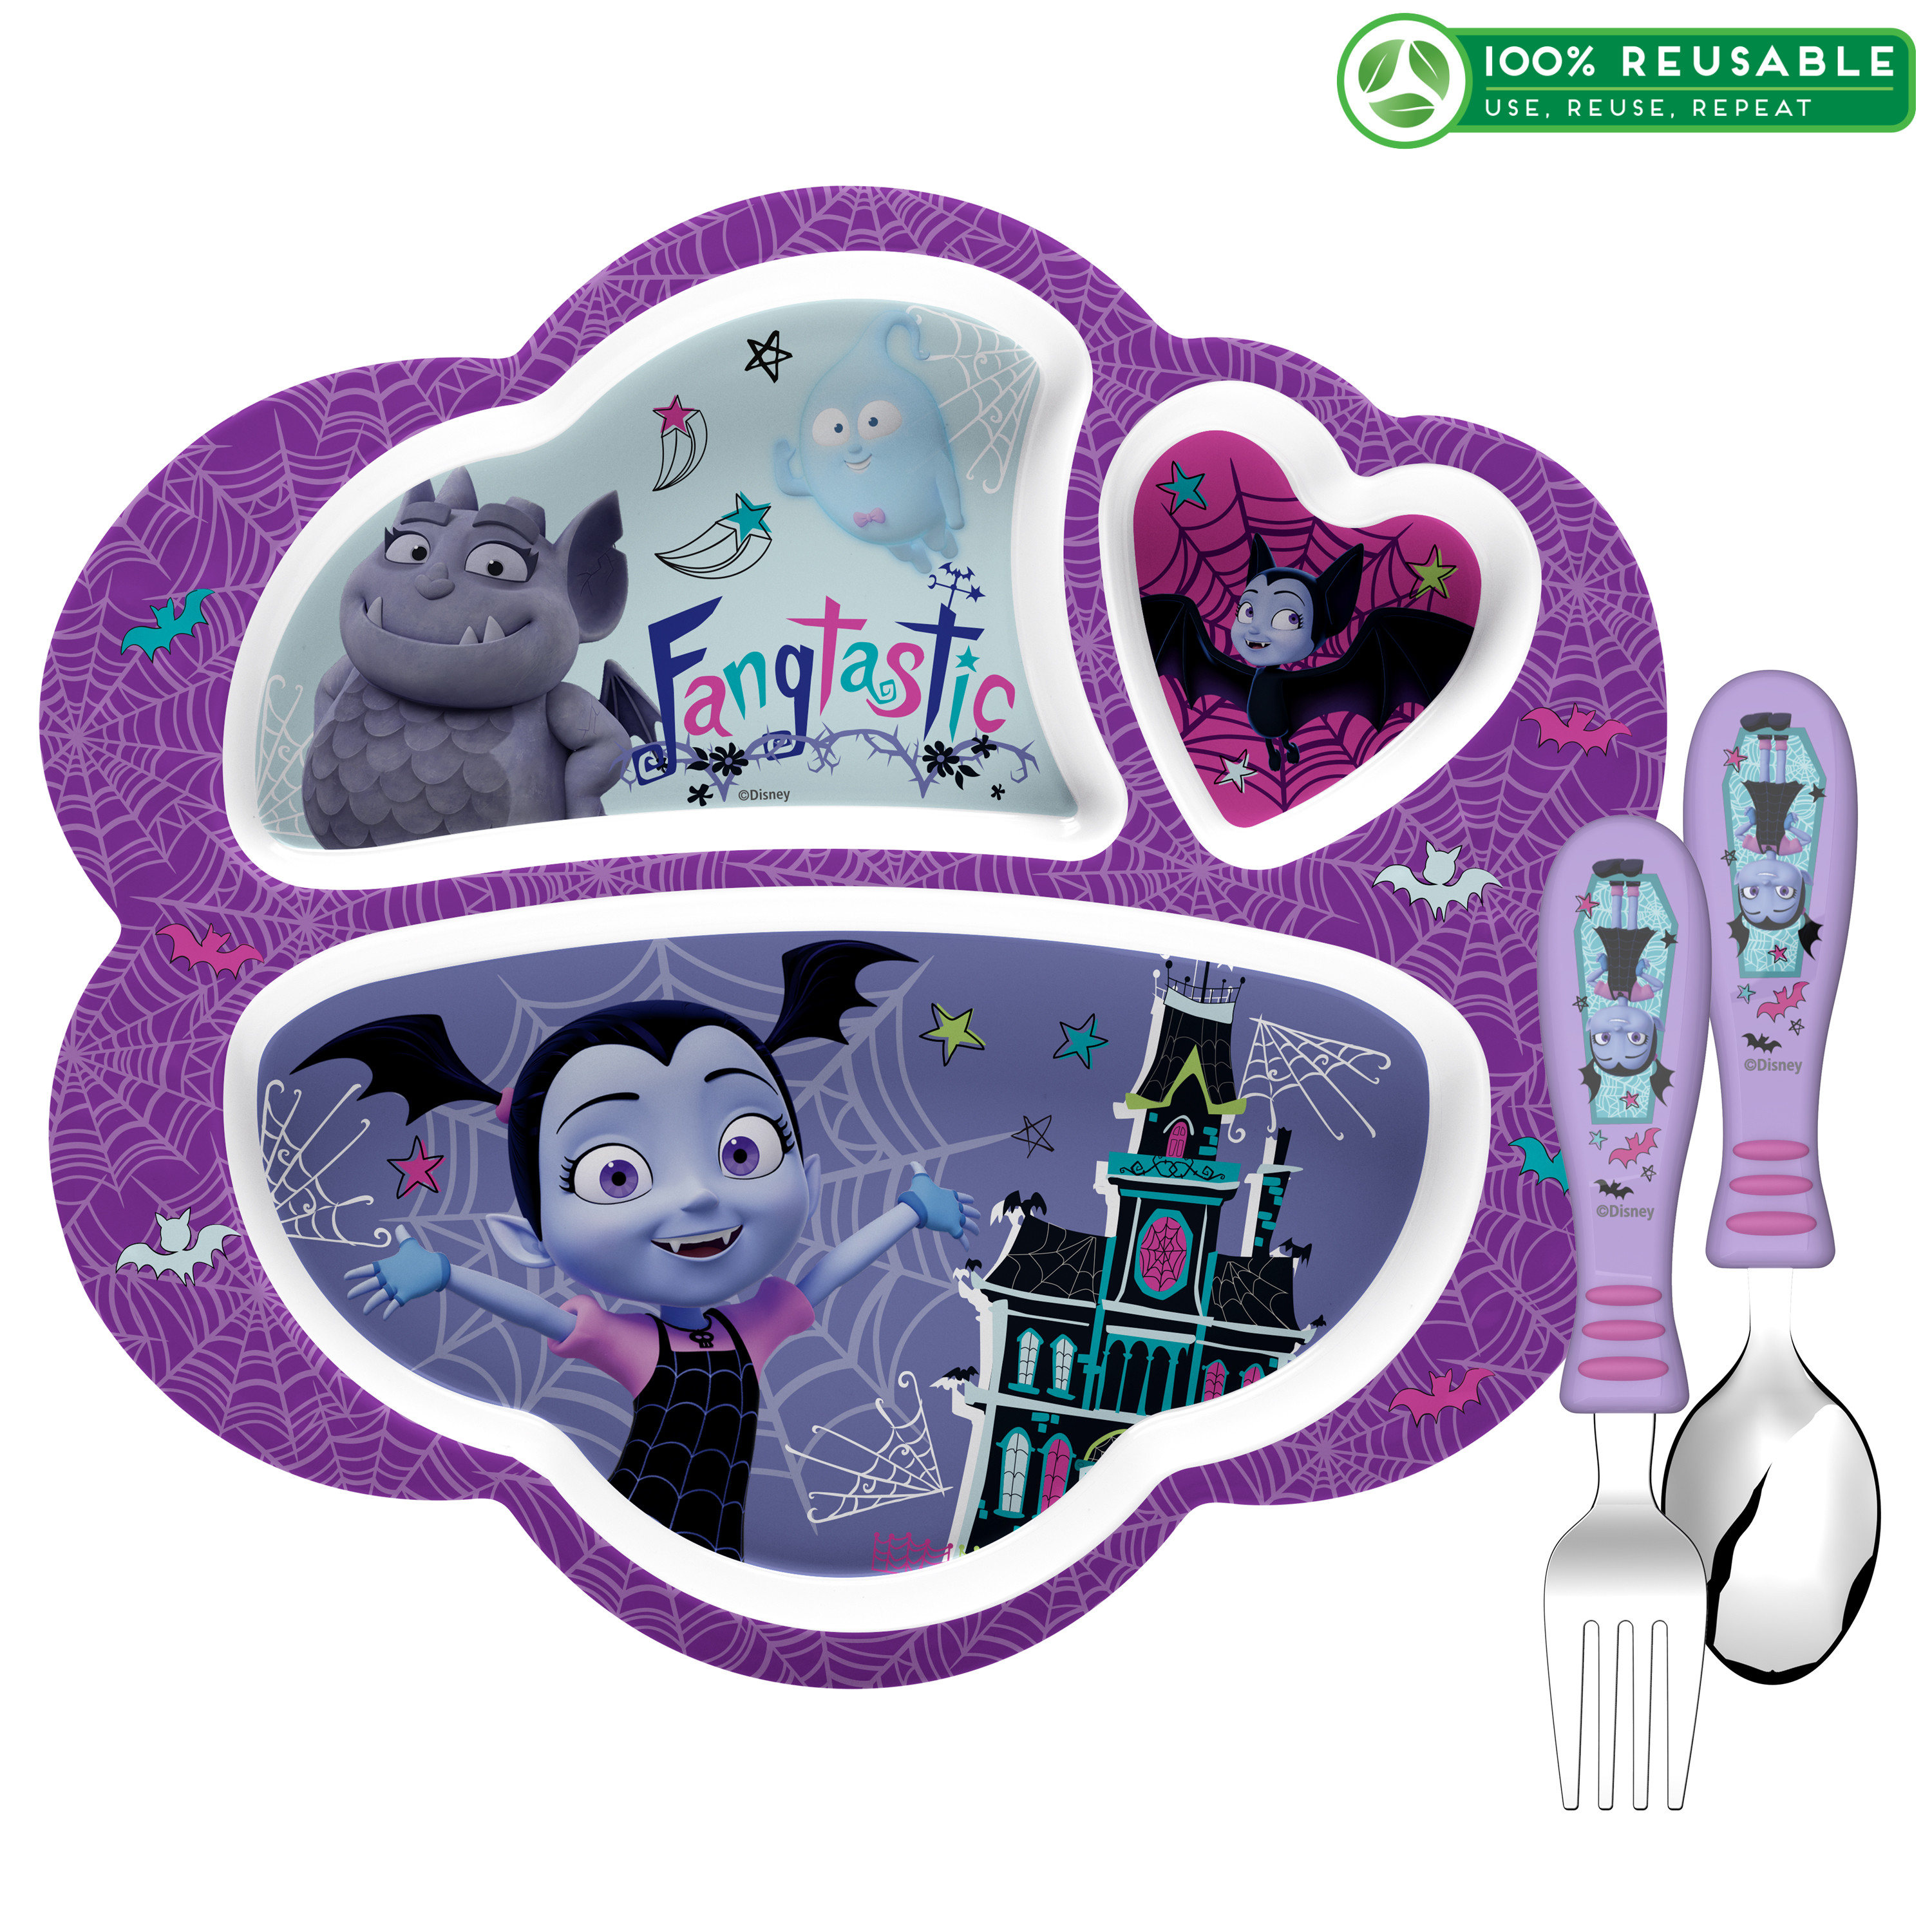 Disney Jr. Kid's Dinnerware Set, Vampirina, 3-piece set slideshow image 1